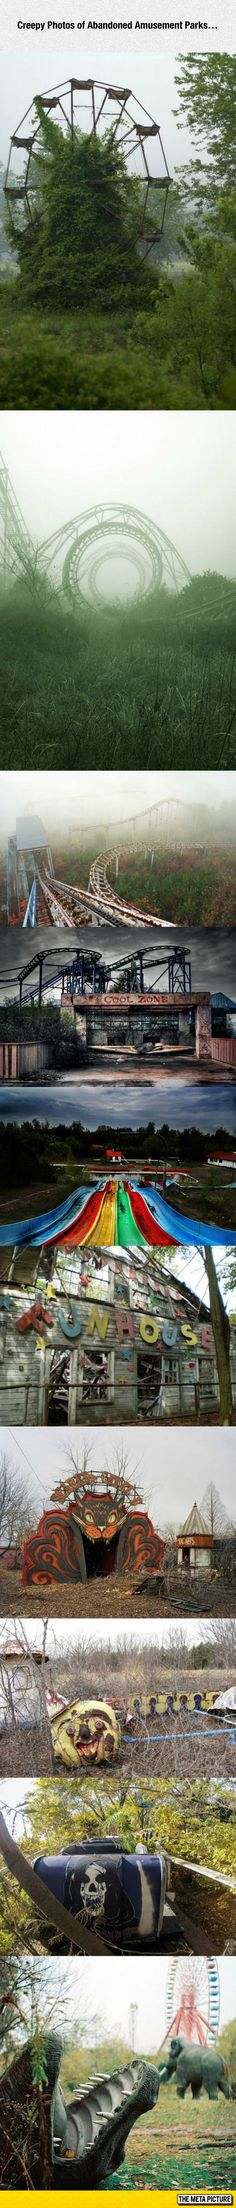 Abandoned Amusement Parks- this looks like a place where clowns meet....